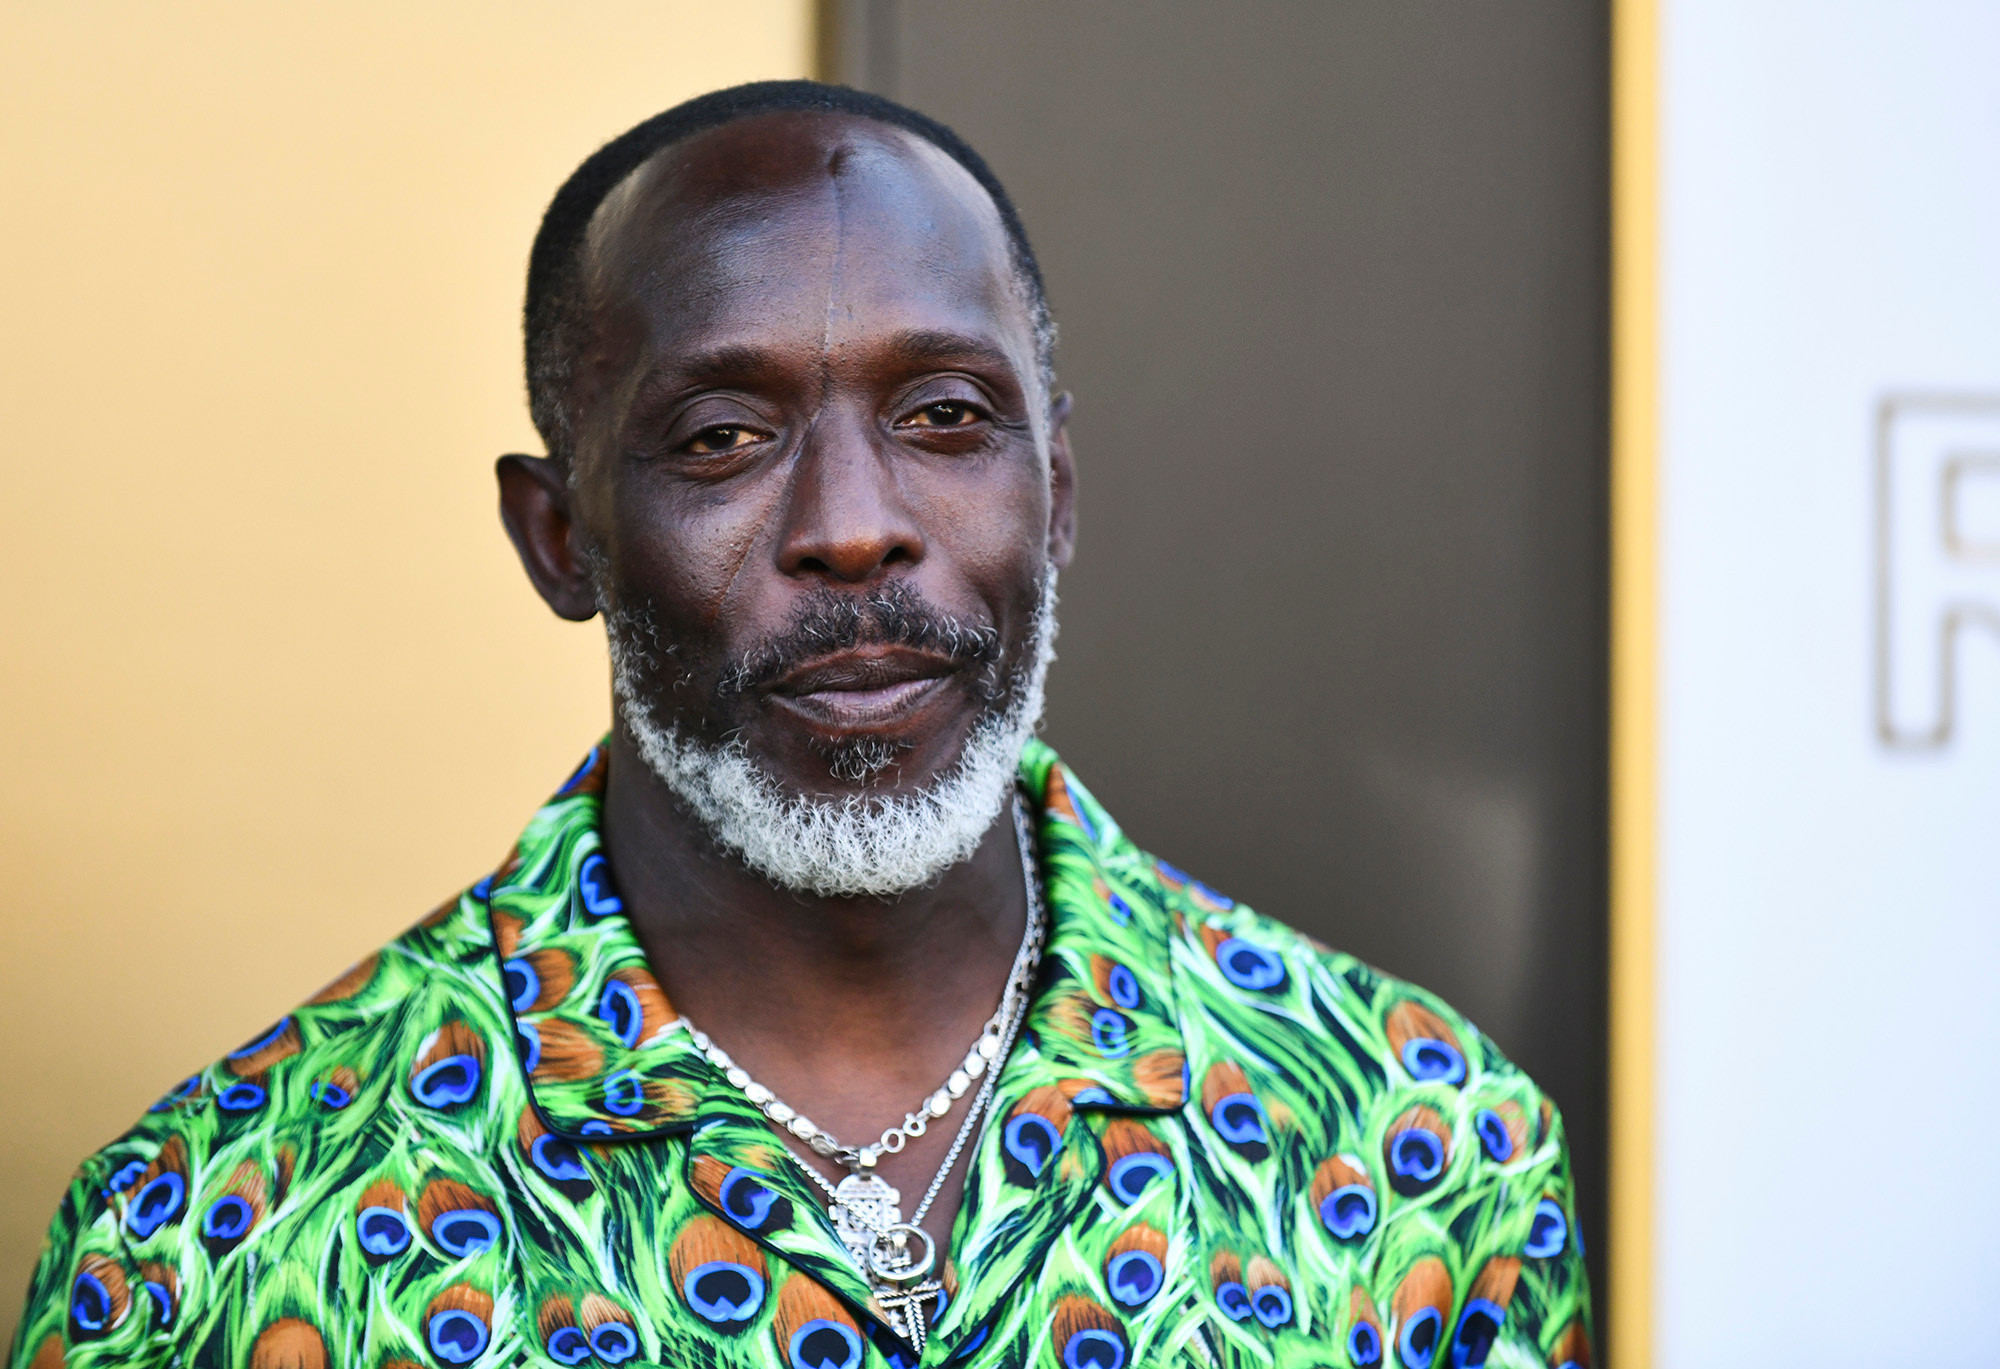 'The Wire' Actor, Michael K. Williams dies of suspected heroin overdose at 54